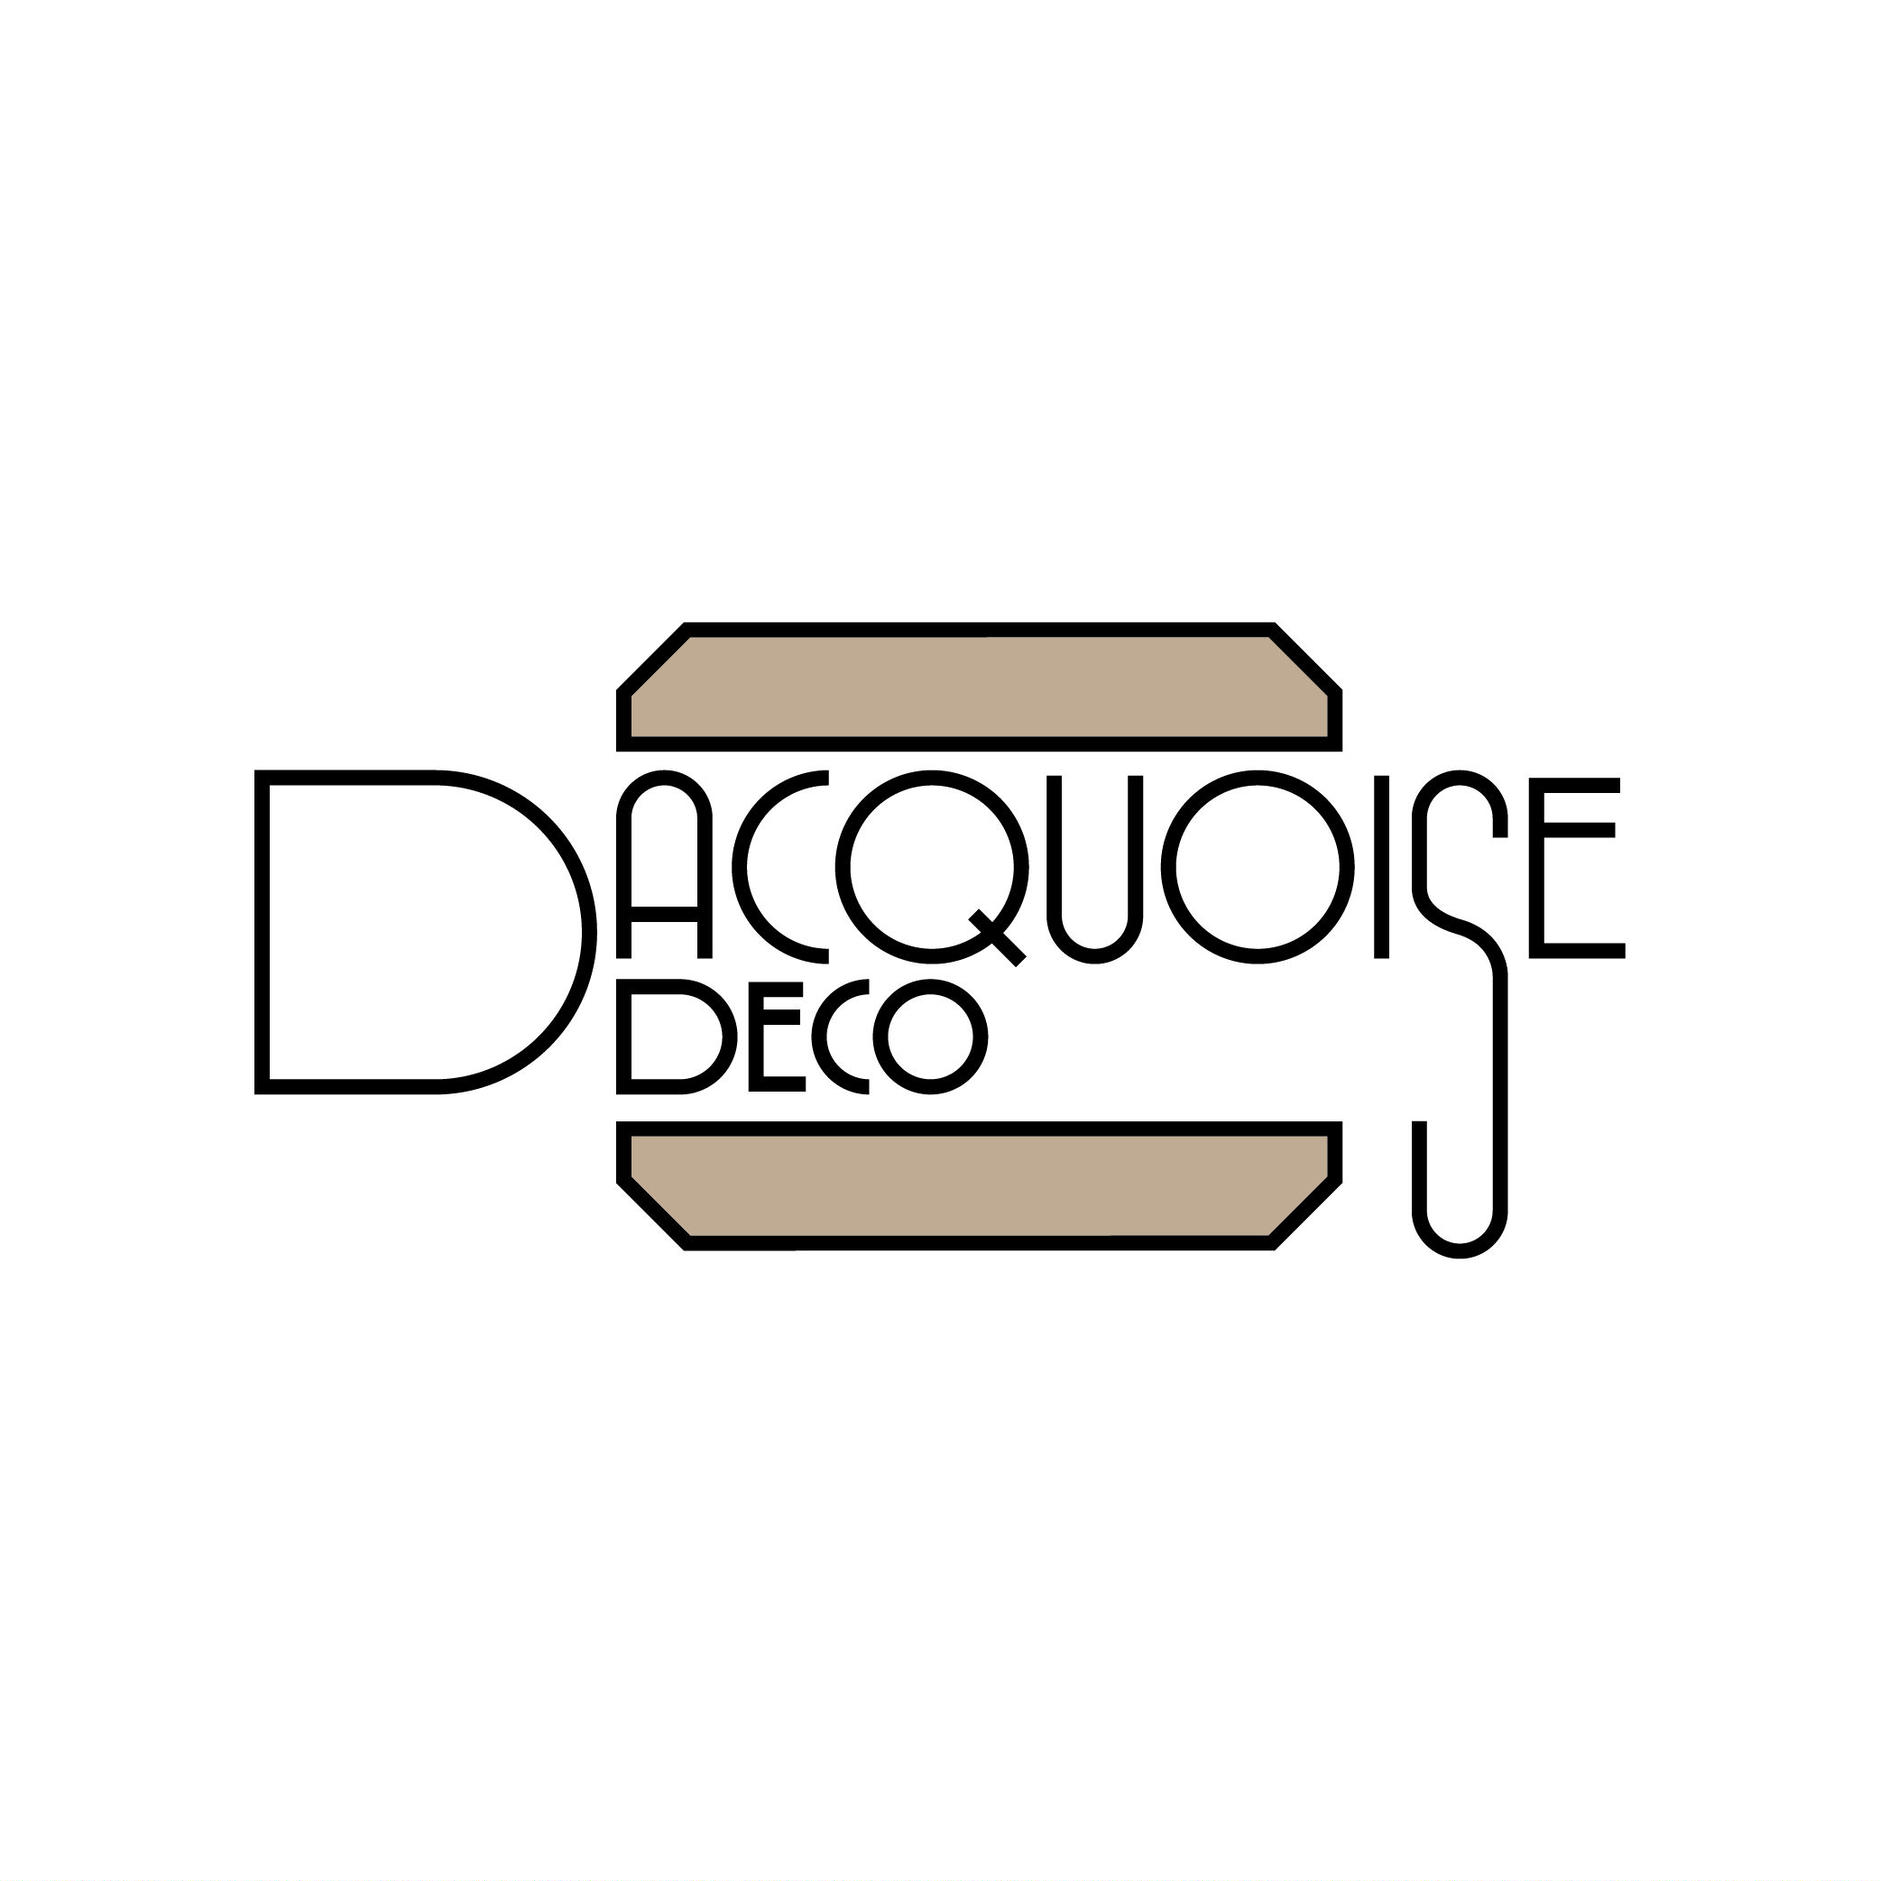 DACQUOISE DECO